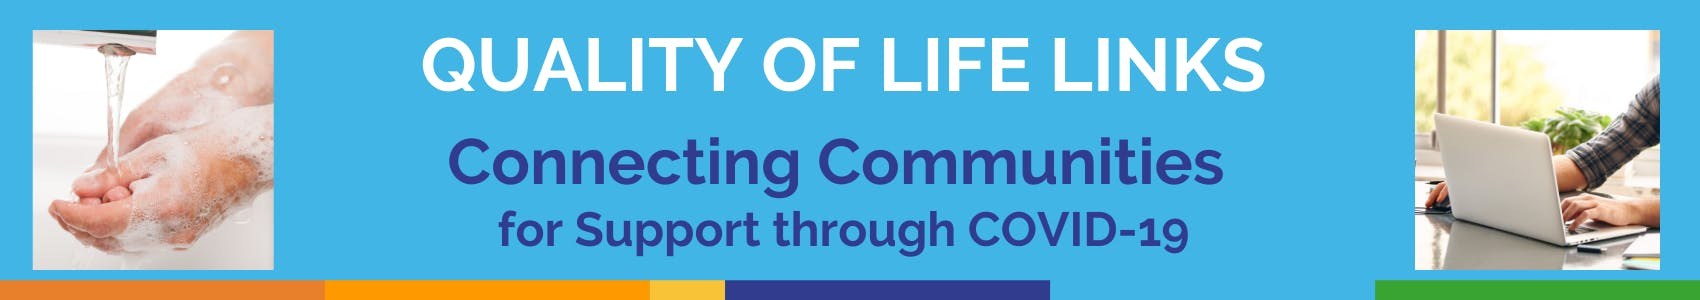 Quality of Life - Connecting Communities for Support through COVID-19